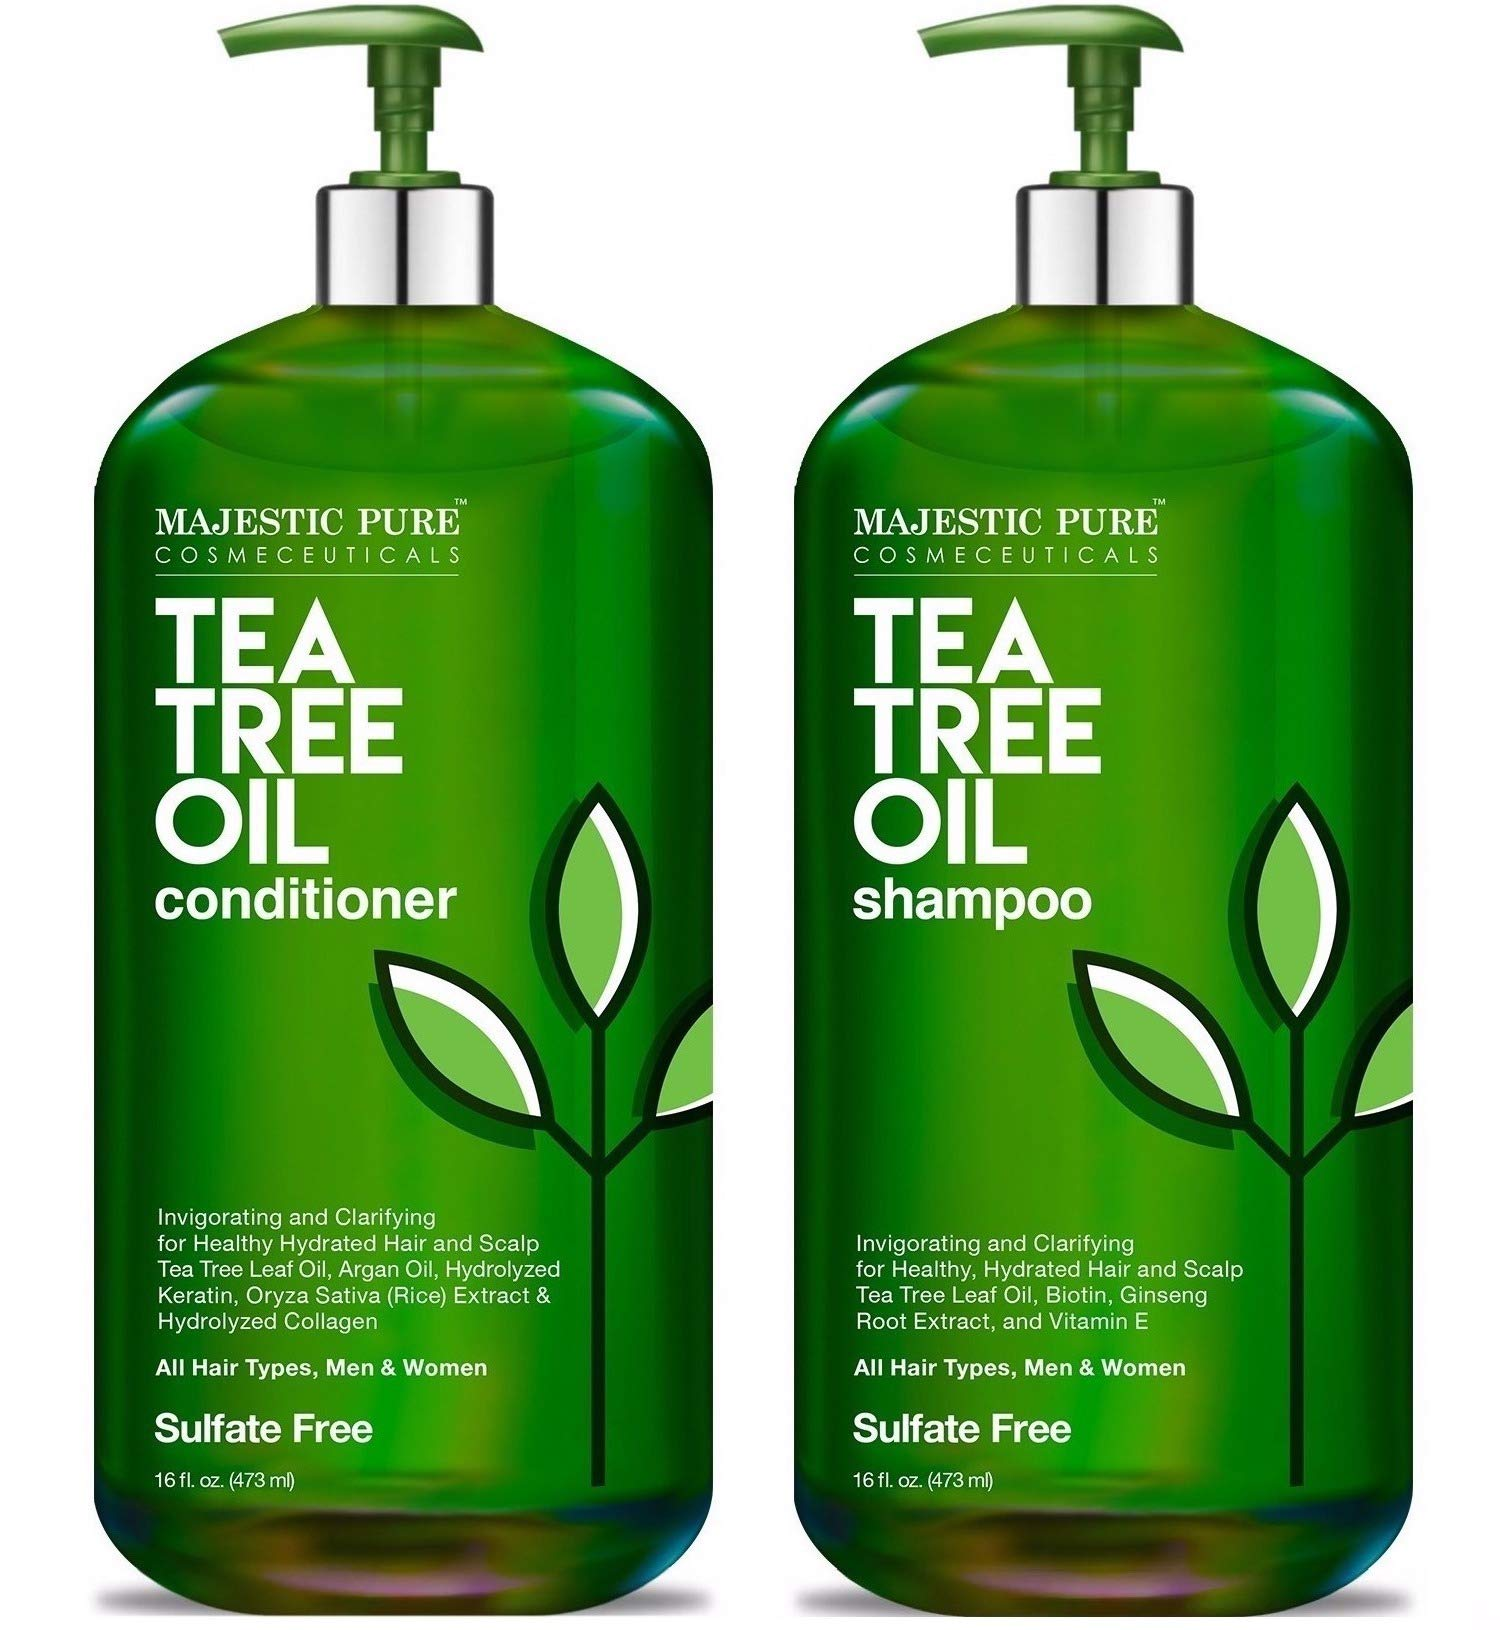 MAJESTIC PURE Tea Tree Shampoo and Conditioner Set for Men and Women -16 fl oz each - Hydrating and Fighting Dandruff, Lice and Itchy, Irritating or Dry Scalp - For All Hair Types - Sulfate Free by Majestic Pure